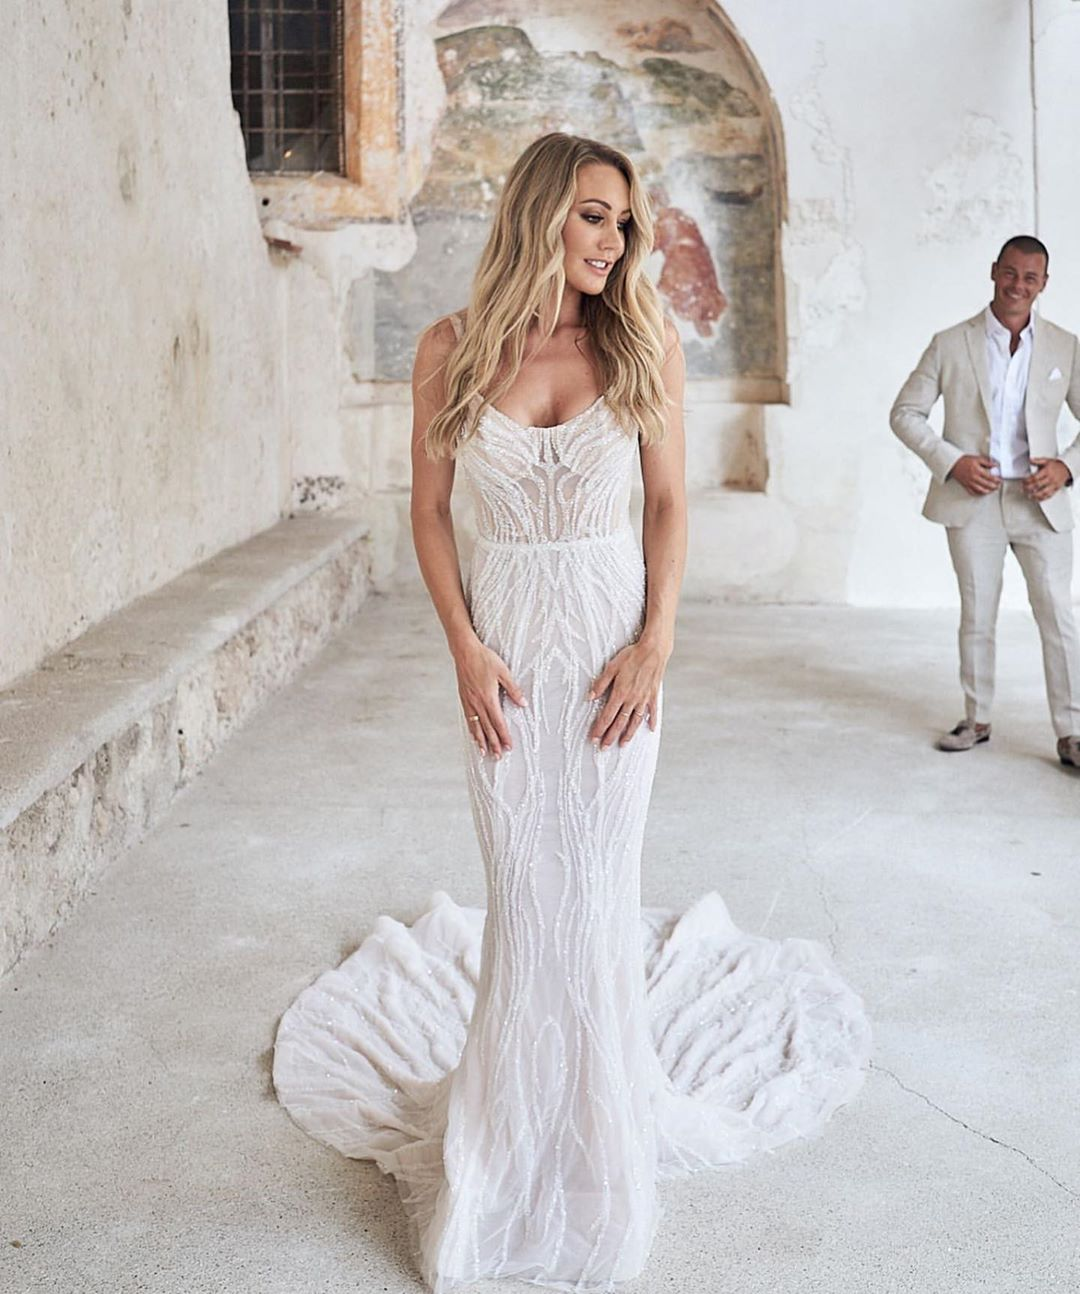 2020 Wedding Dress Mermaid Scoop Neckline Beadings Lace Zipper Back With Buttons Tranparent Top Eslieb HA137